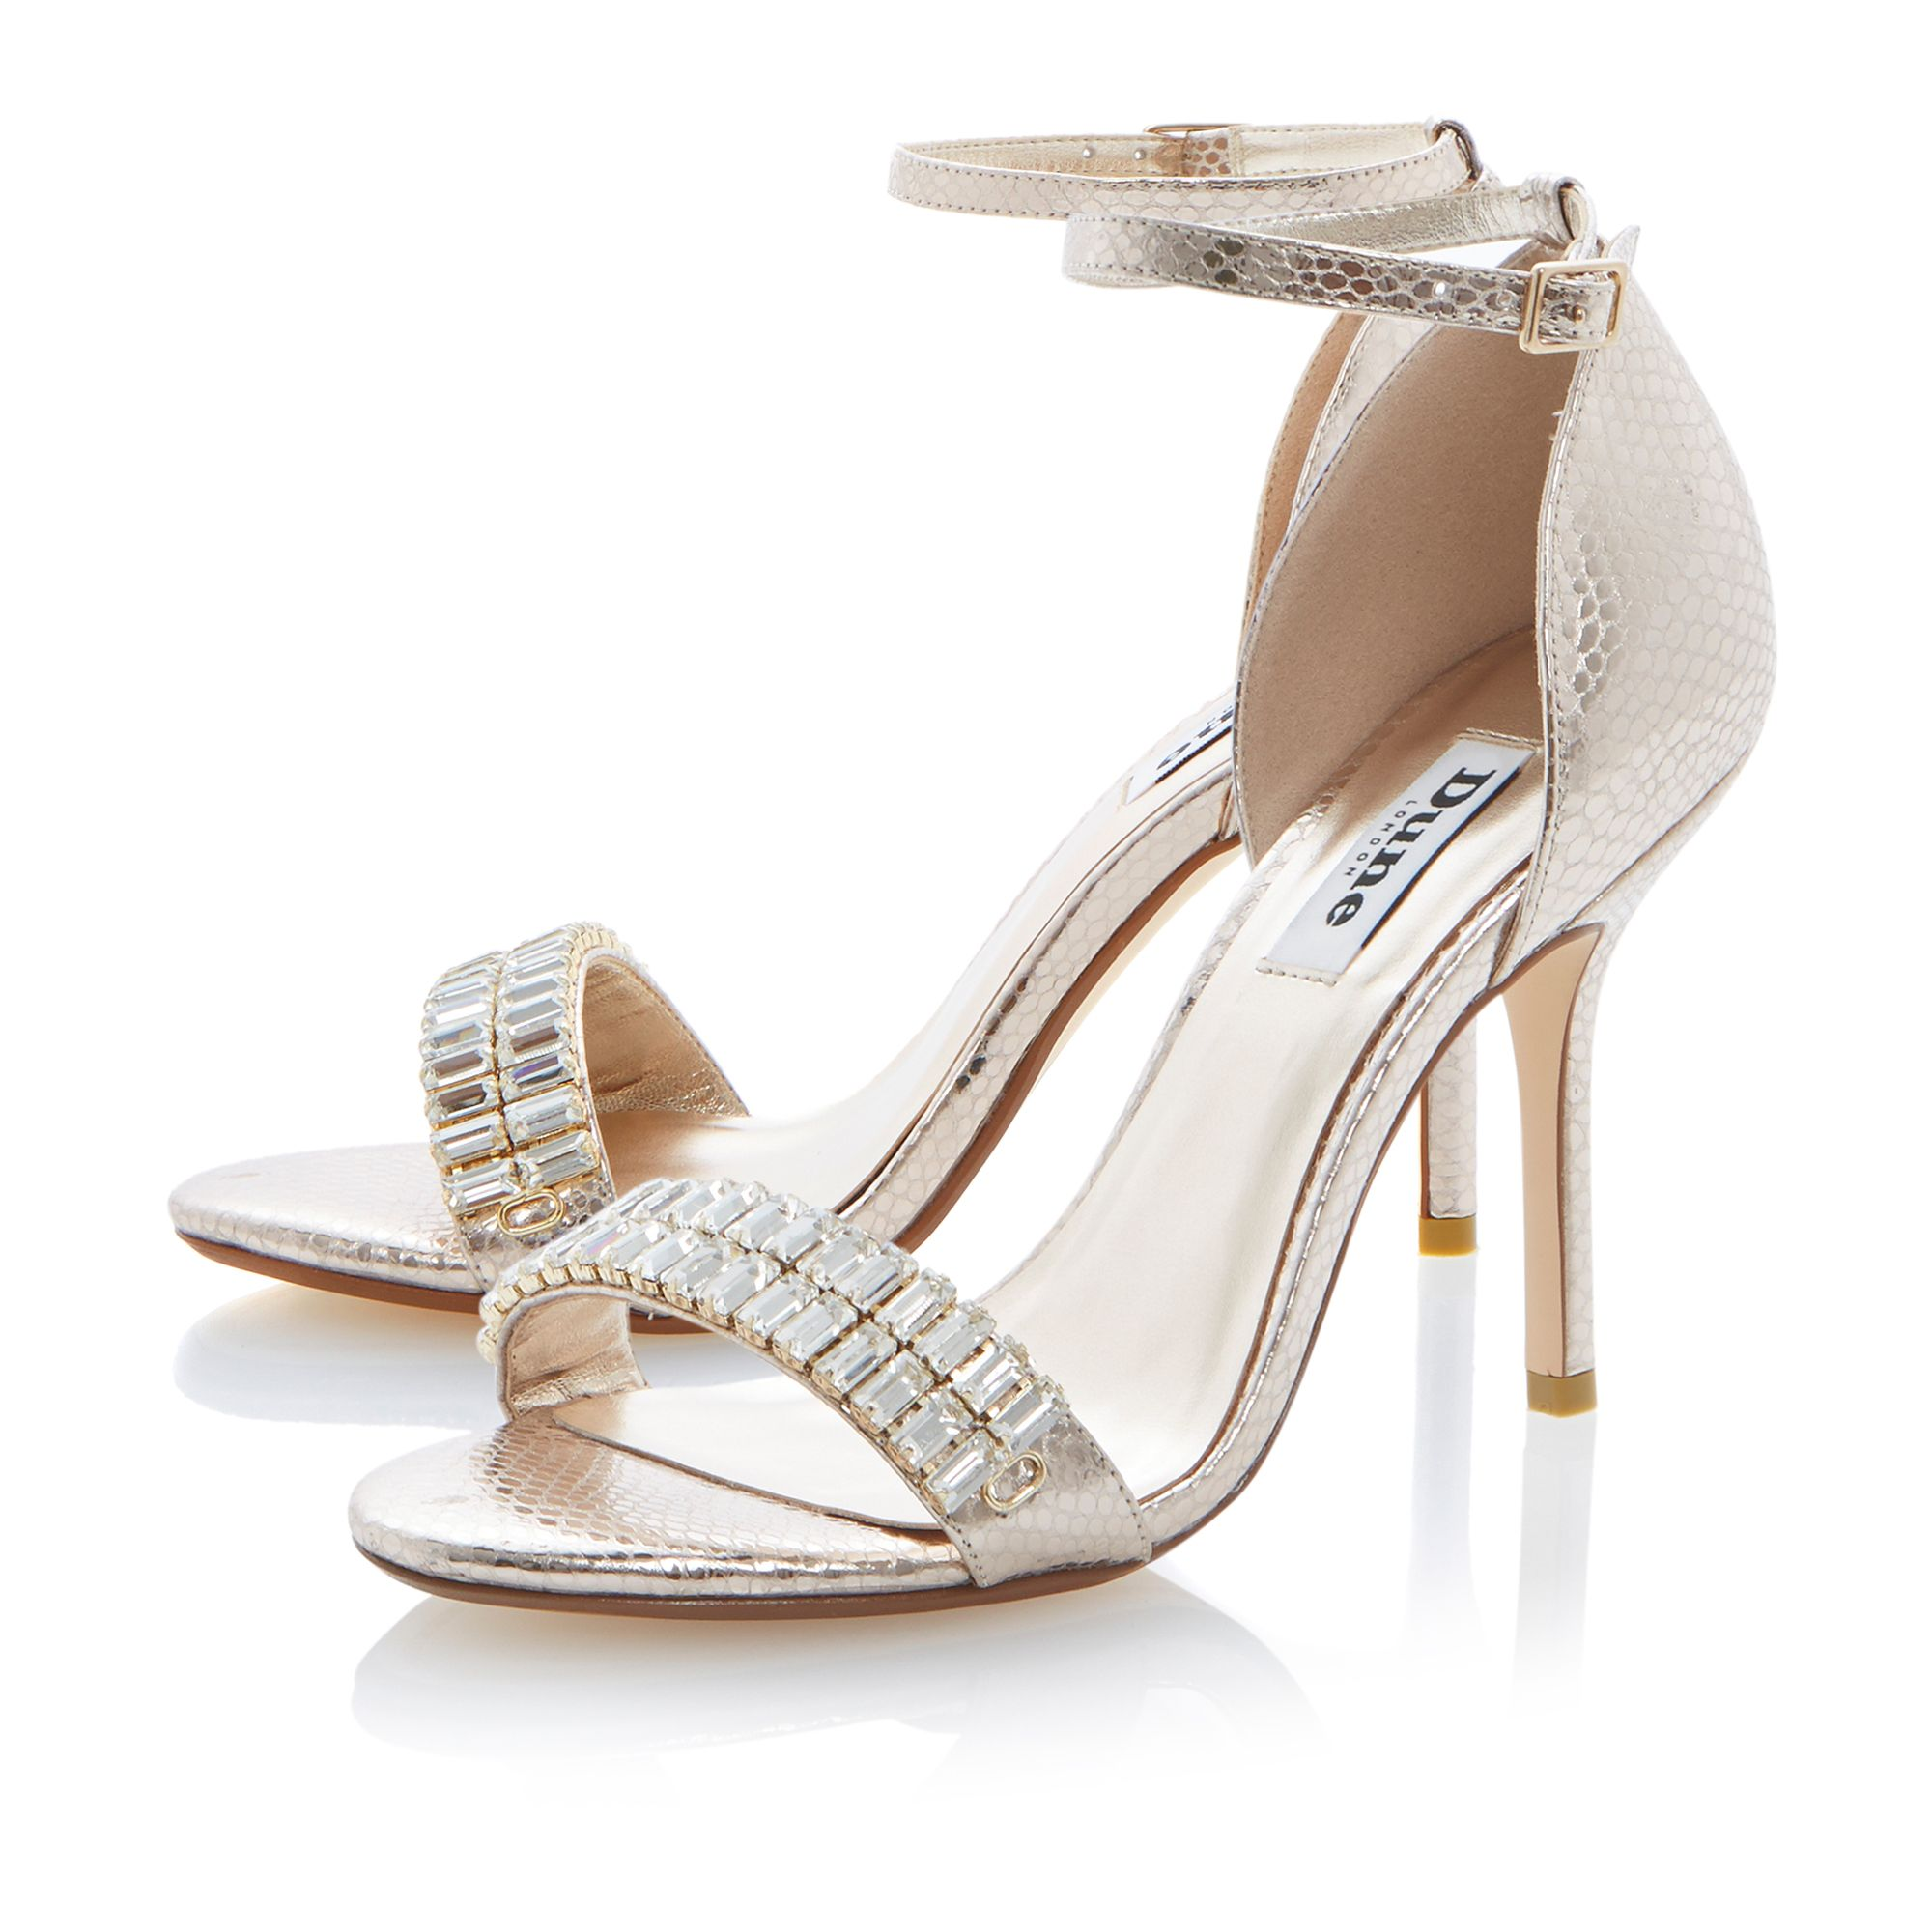 Helena leather stiletto dressy sandals